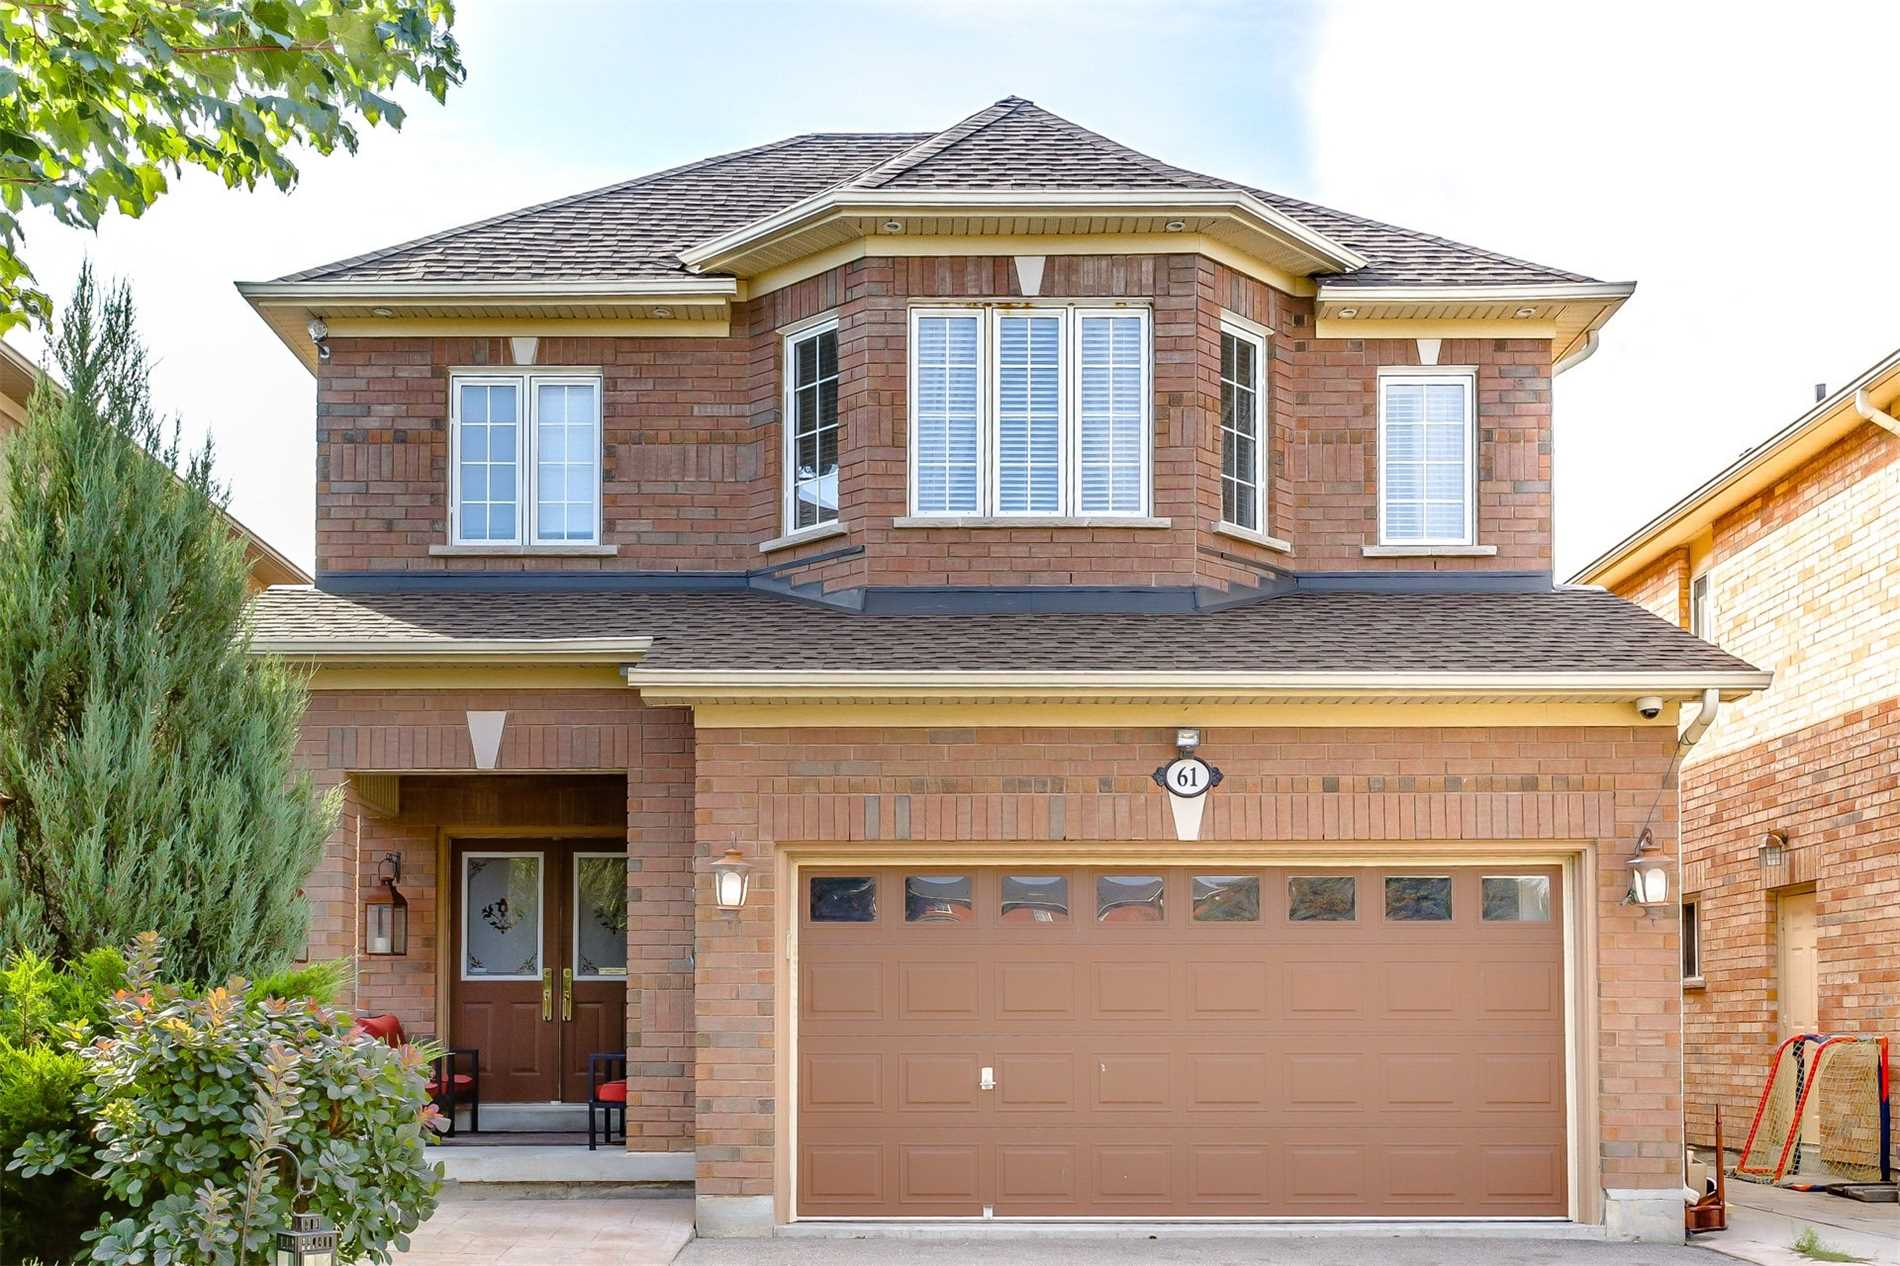 House for sale at 61 Sheshi Drive Vaughan Ontario - MLS: N4318750